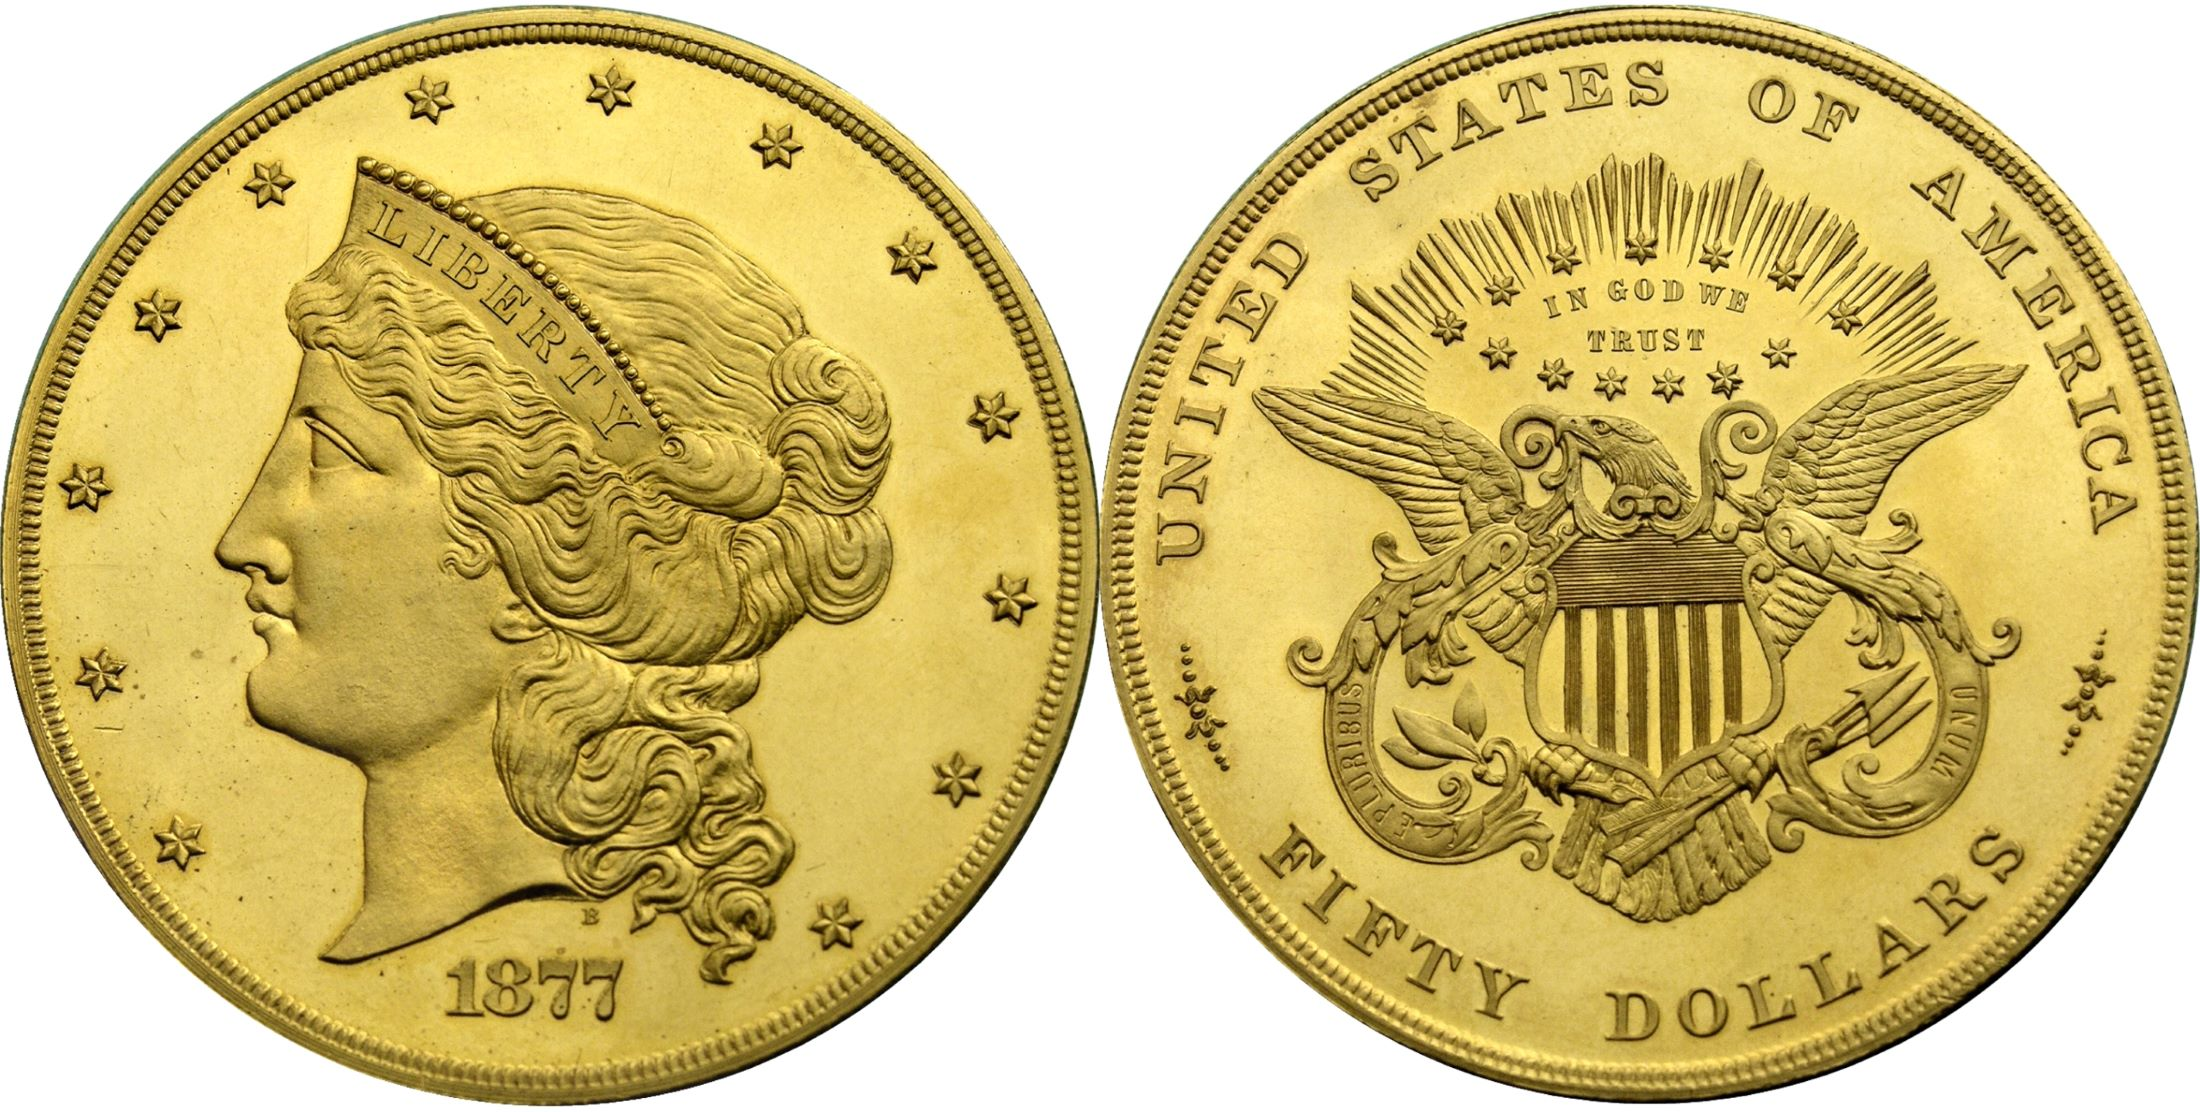 Image courtesy of the national numismatic collection at the